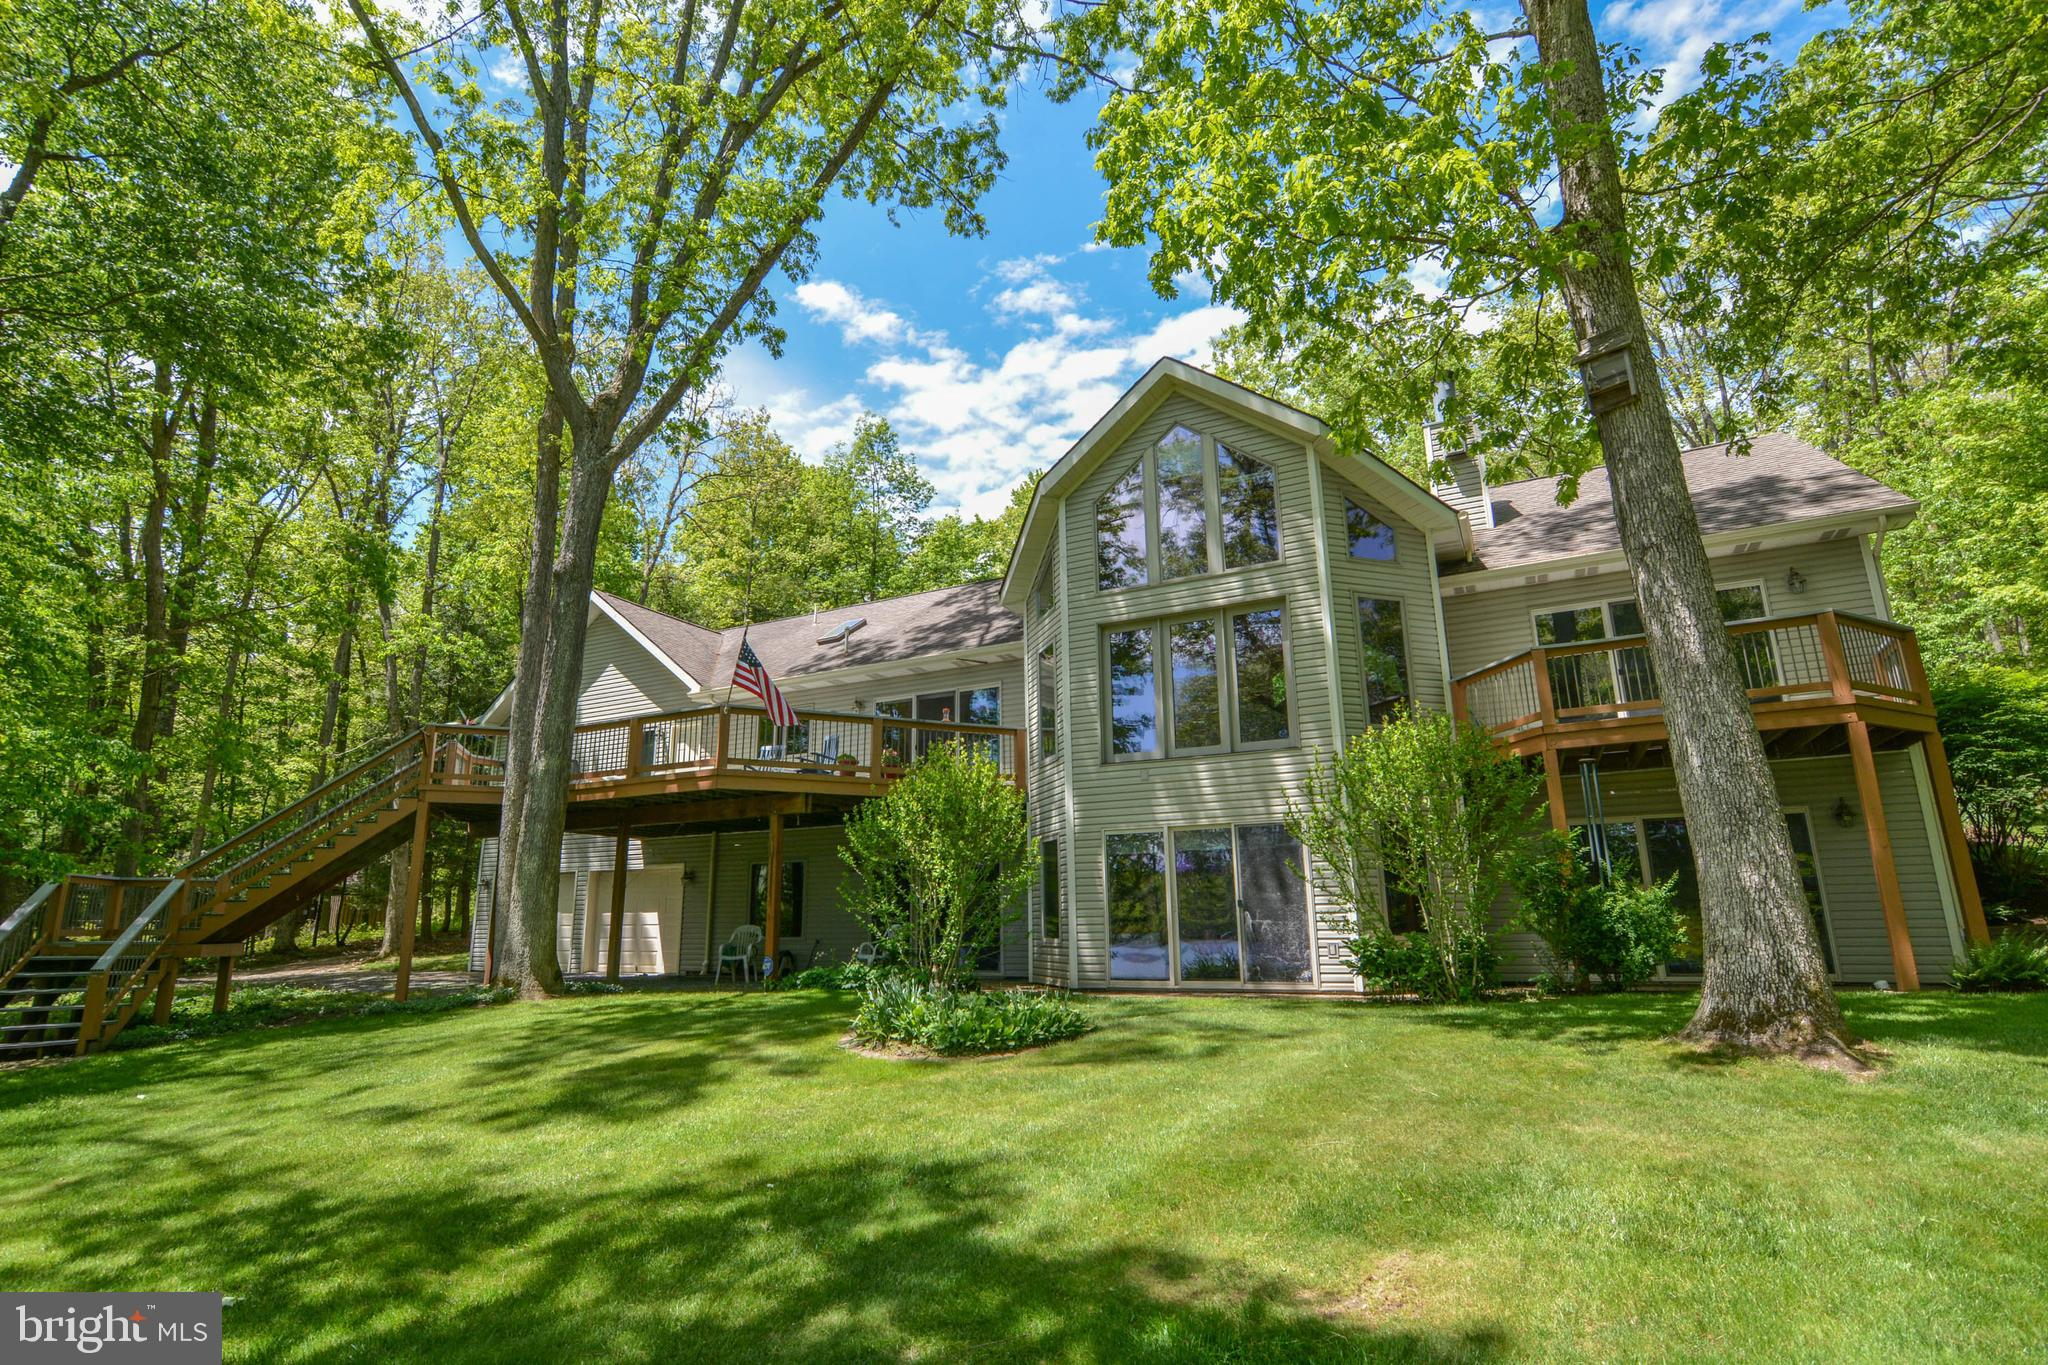 Deep Creek Lakefront Homes For Sale | Waterfront Homes For Sale